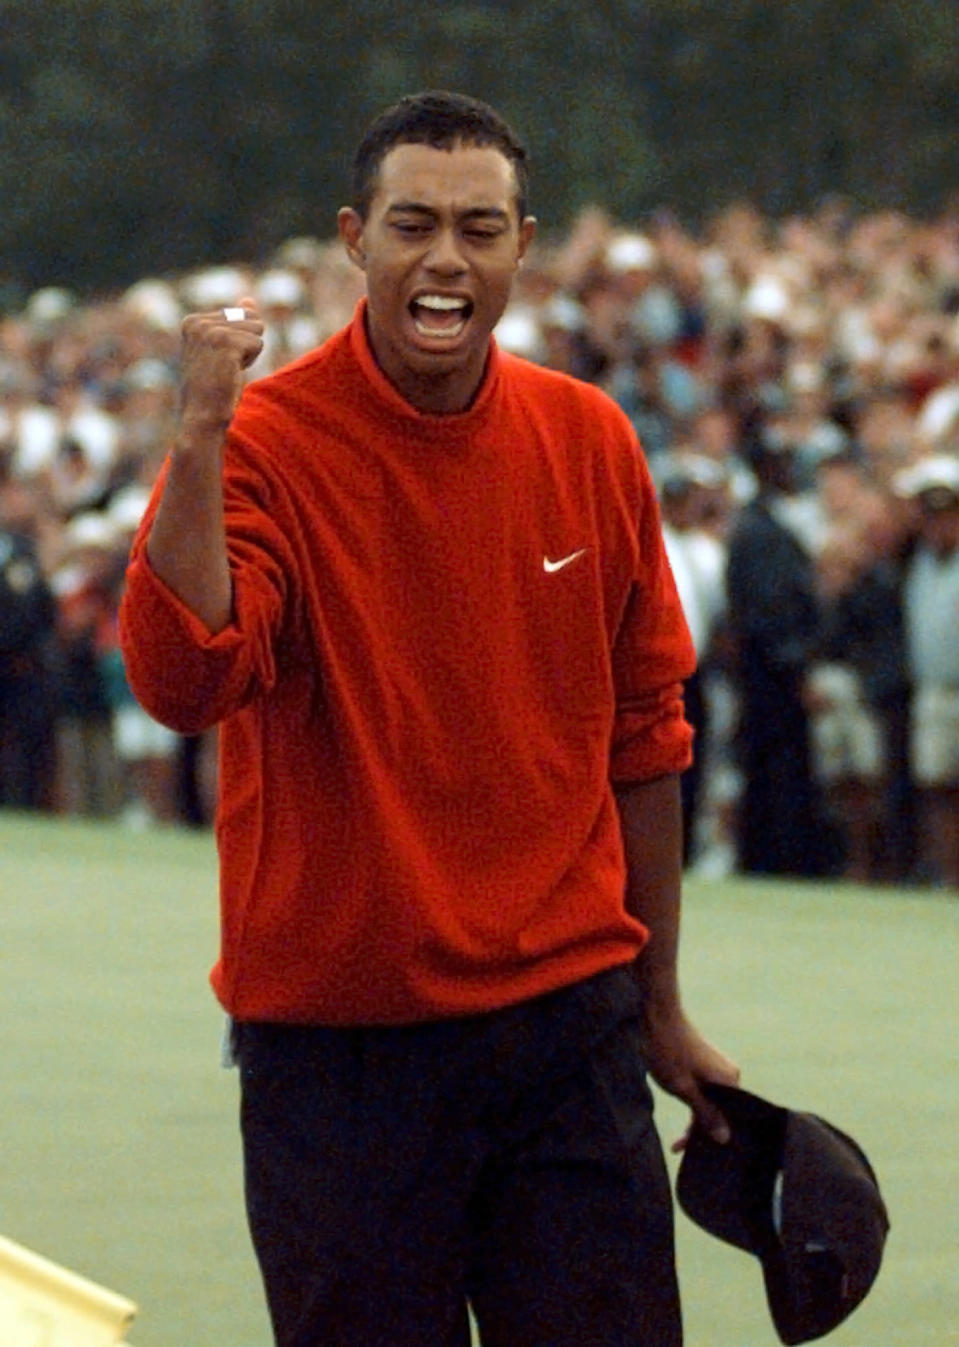 <p>1997 Masters champion Tiger Woods celebrates as he leaves the 18th green after winning the Masters at the Augusta National Golf Club in Augusta, Ga., Sunday, April 13, 1997. (AP Photo/ Dave Martin) </p>